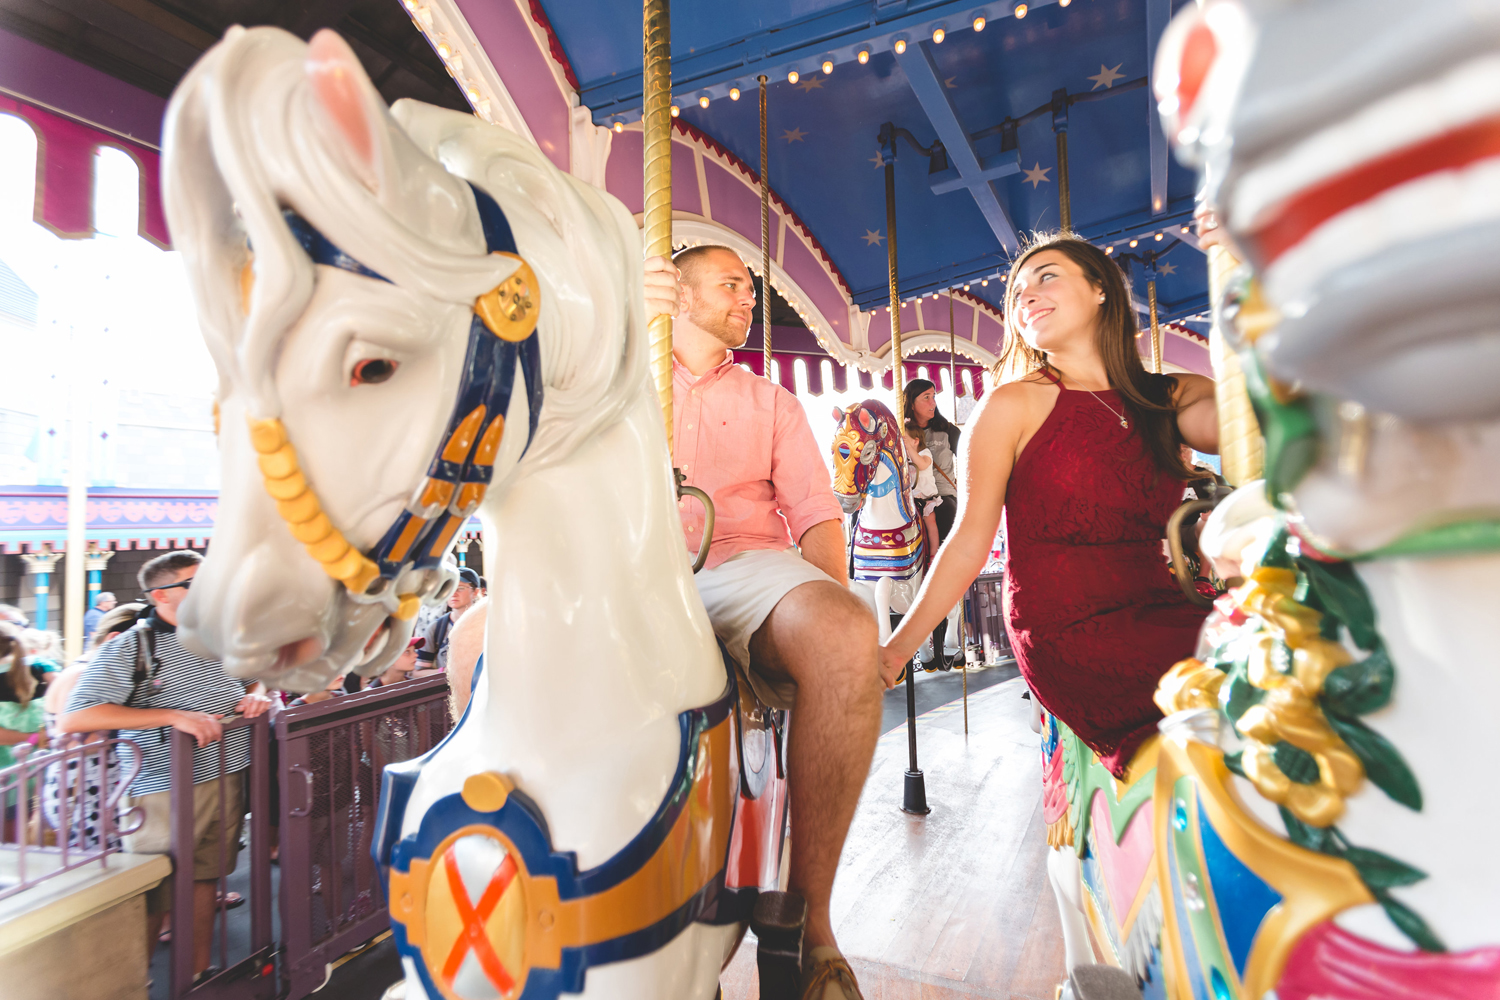 Cute Carousel engagement photo at Disney Magic Kingdom